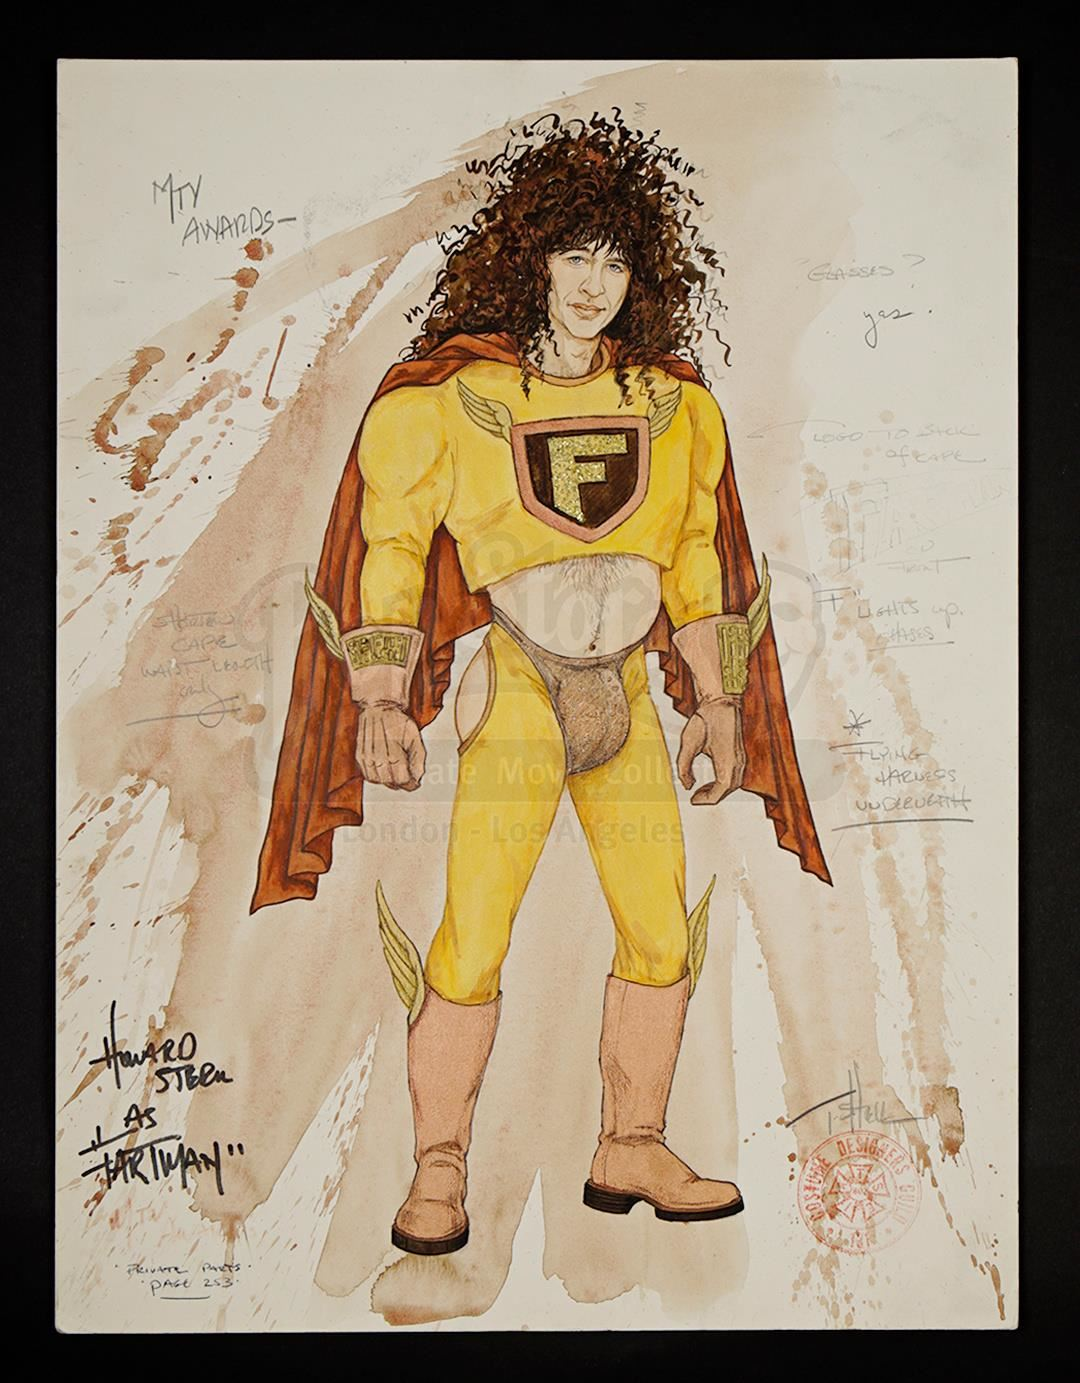 Image 1 fartman hand drawn costume sketch from mtv awards 1992 mtv video